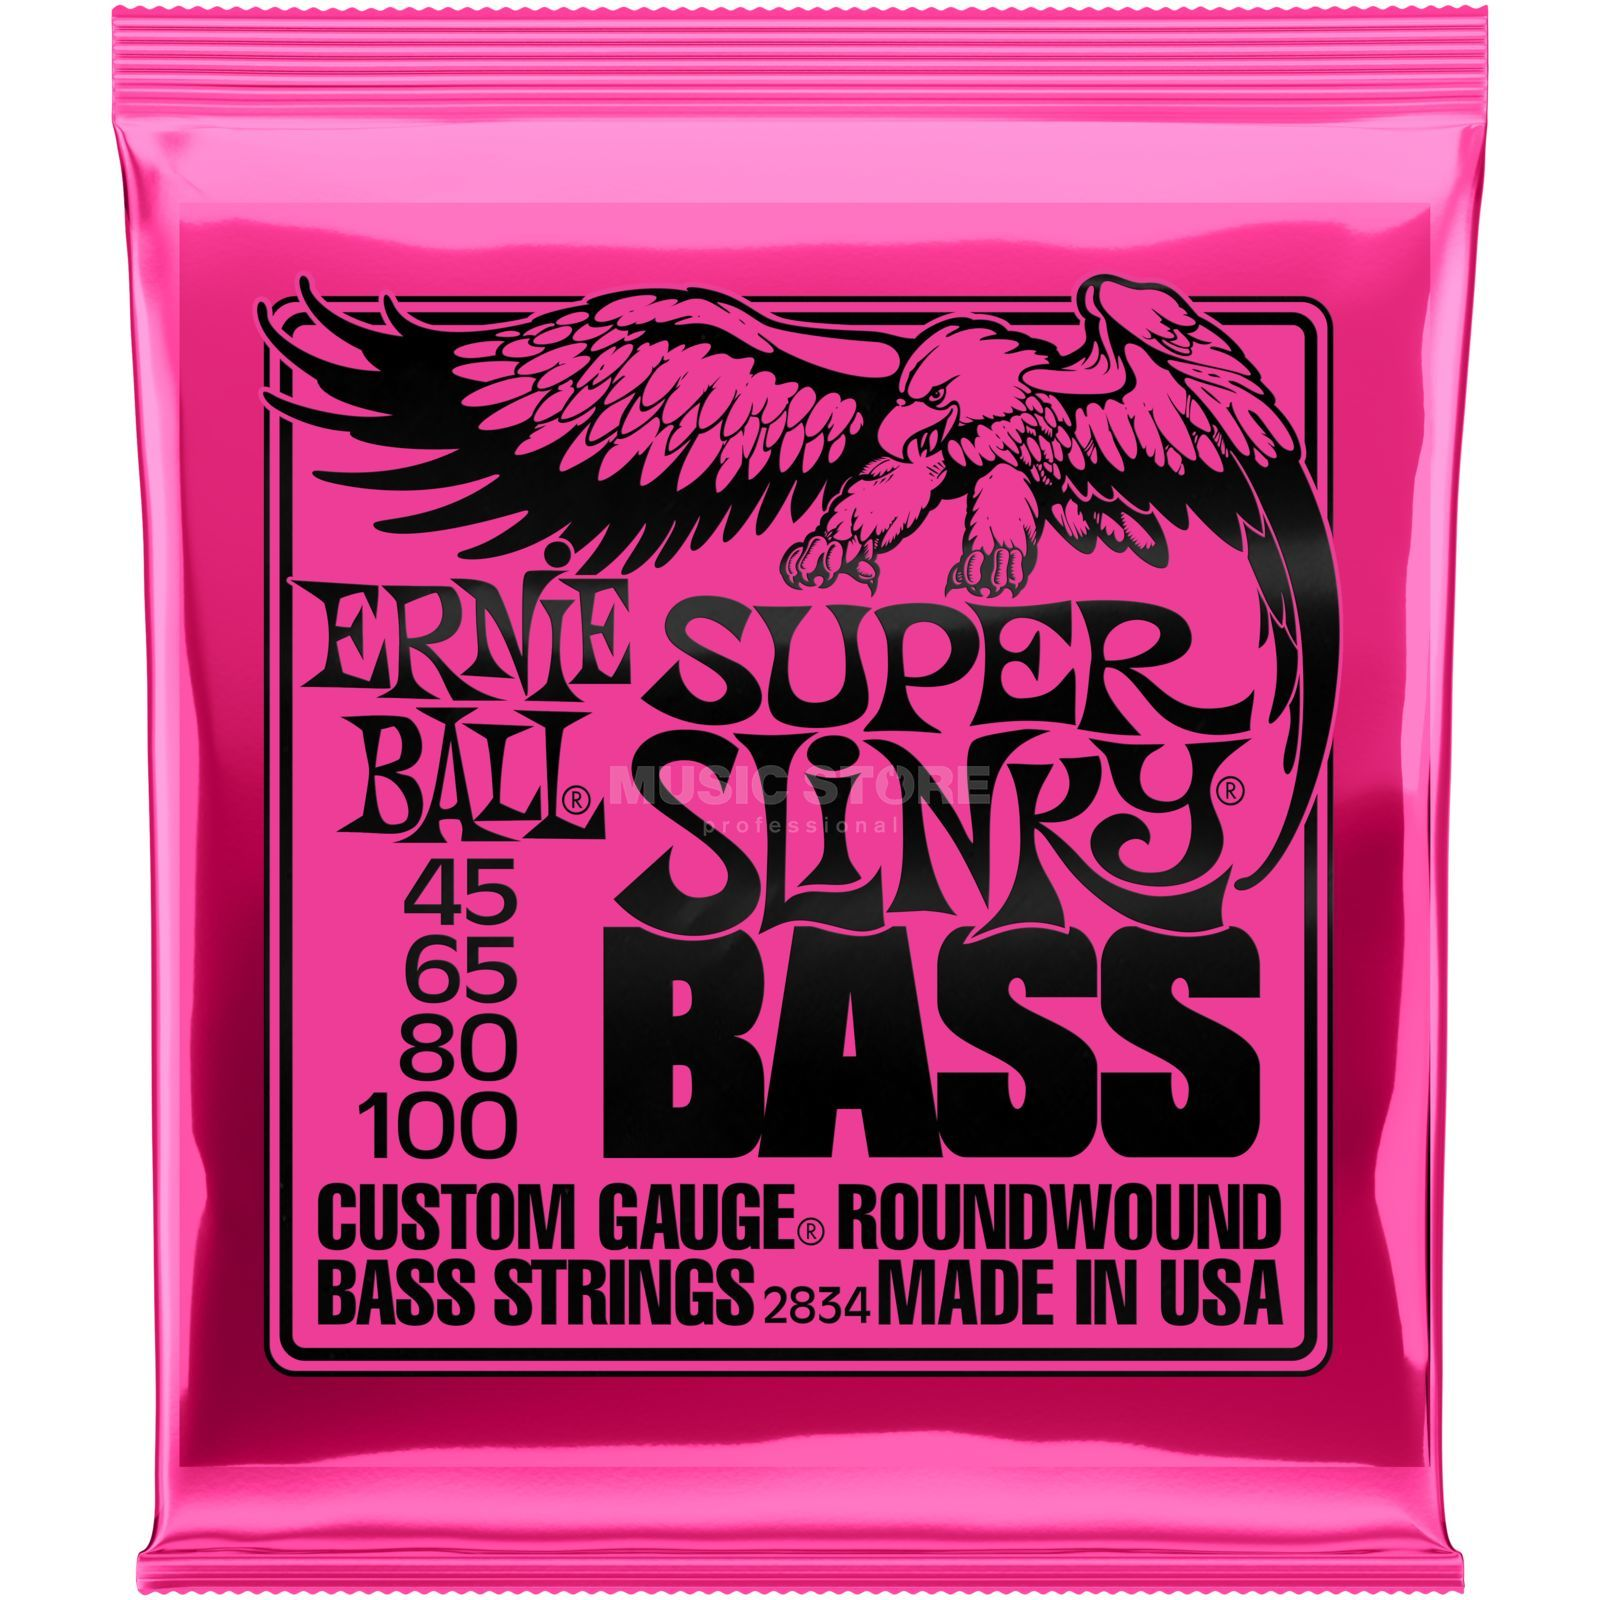 Ernie Ball Bass Strings 45-100 Super Roundwound Long Scale Изображение товара